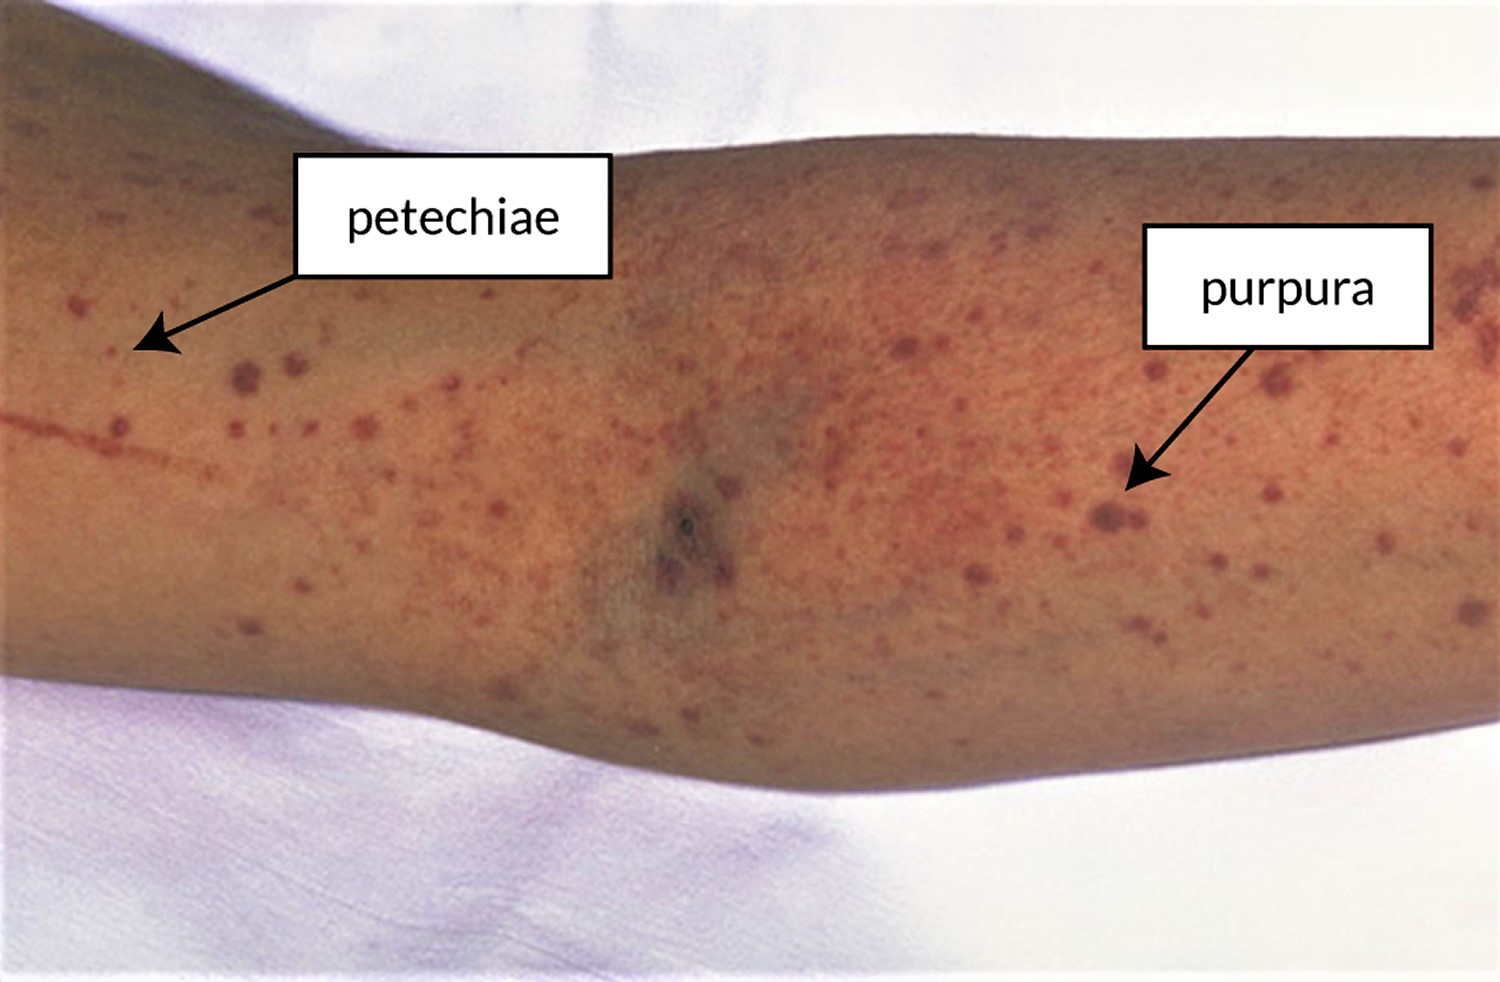 Purpura and petechiae